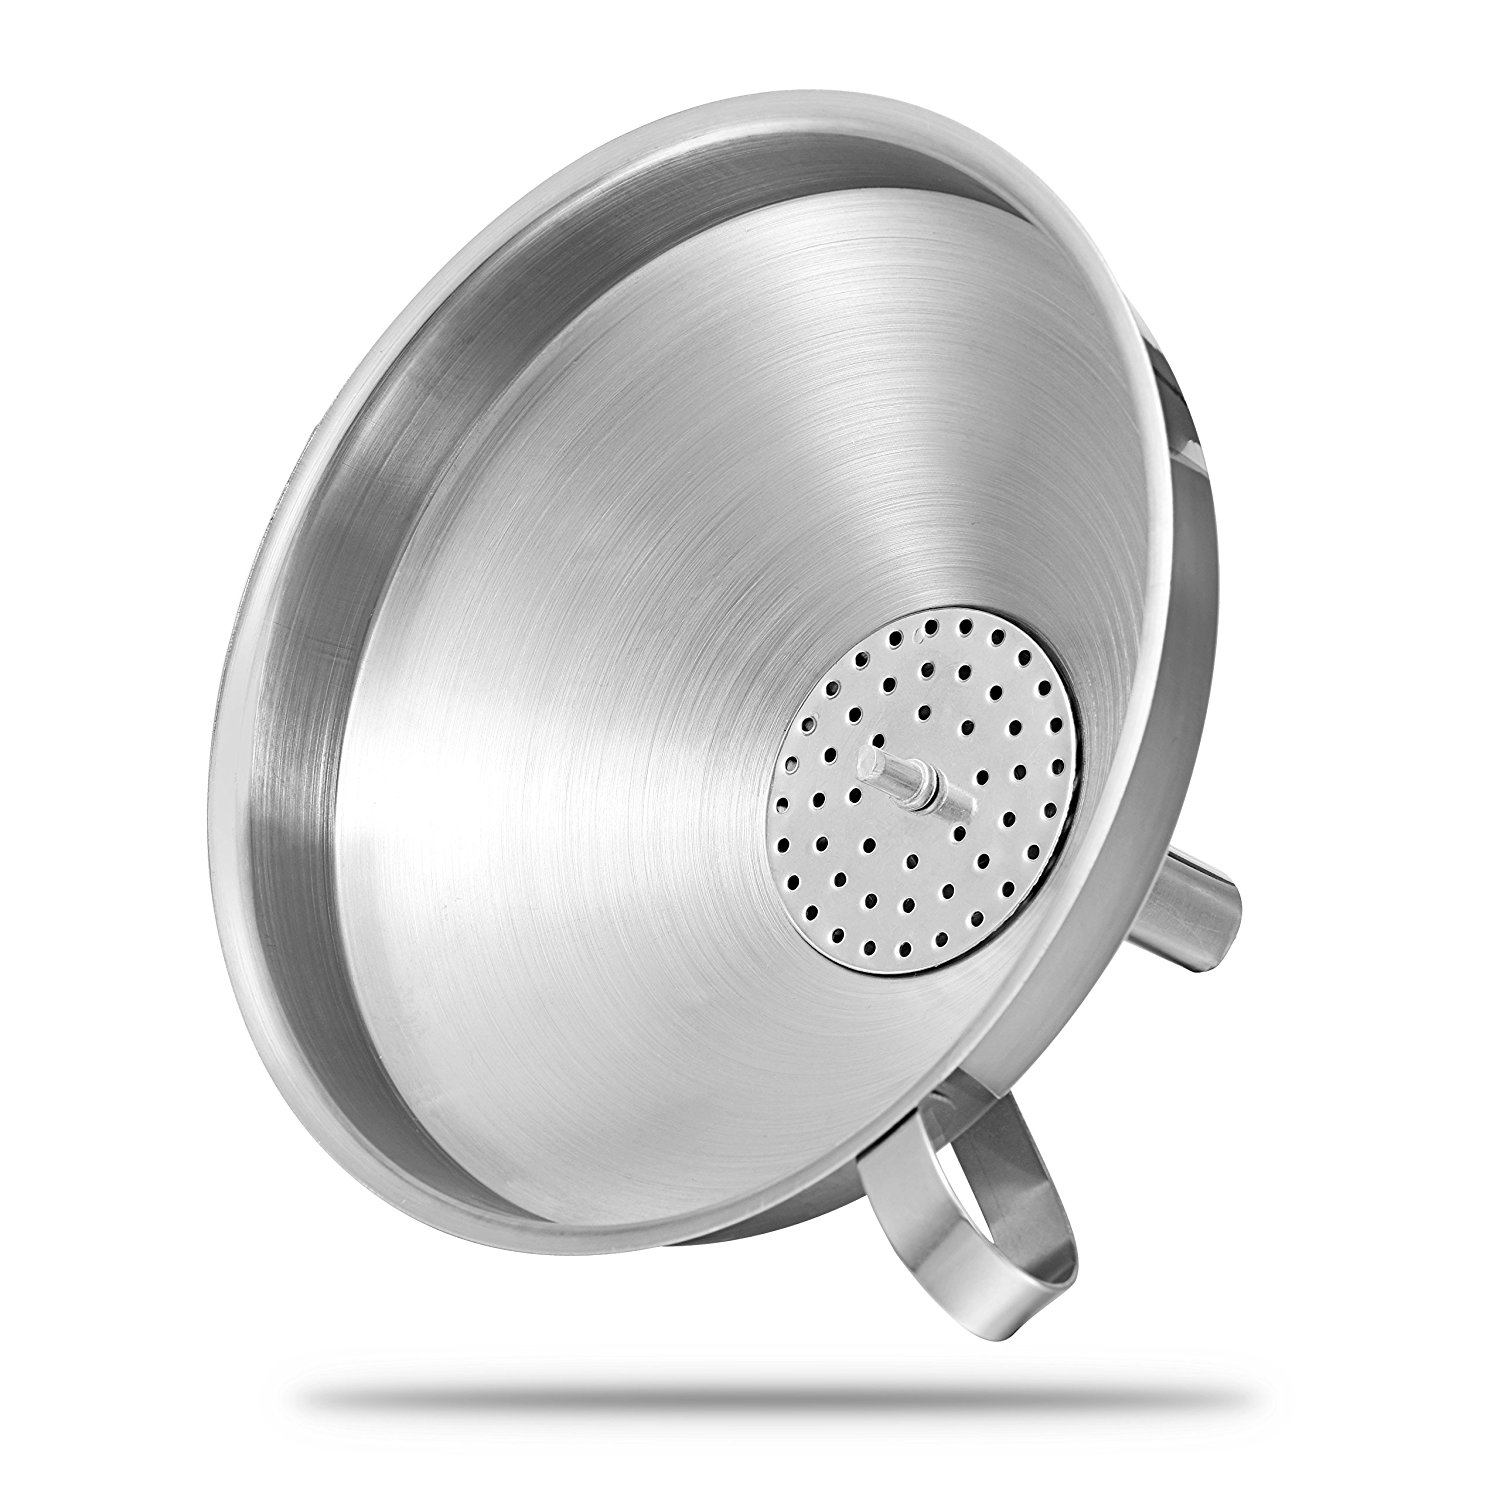 KCASA KC-FS022 5 Inches Stainless Steel Funnel Wide Mouth Liquid Oil Filling Funnel With Strainer